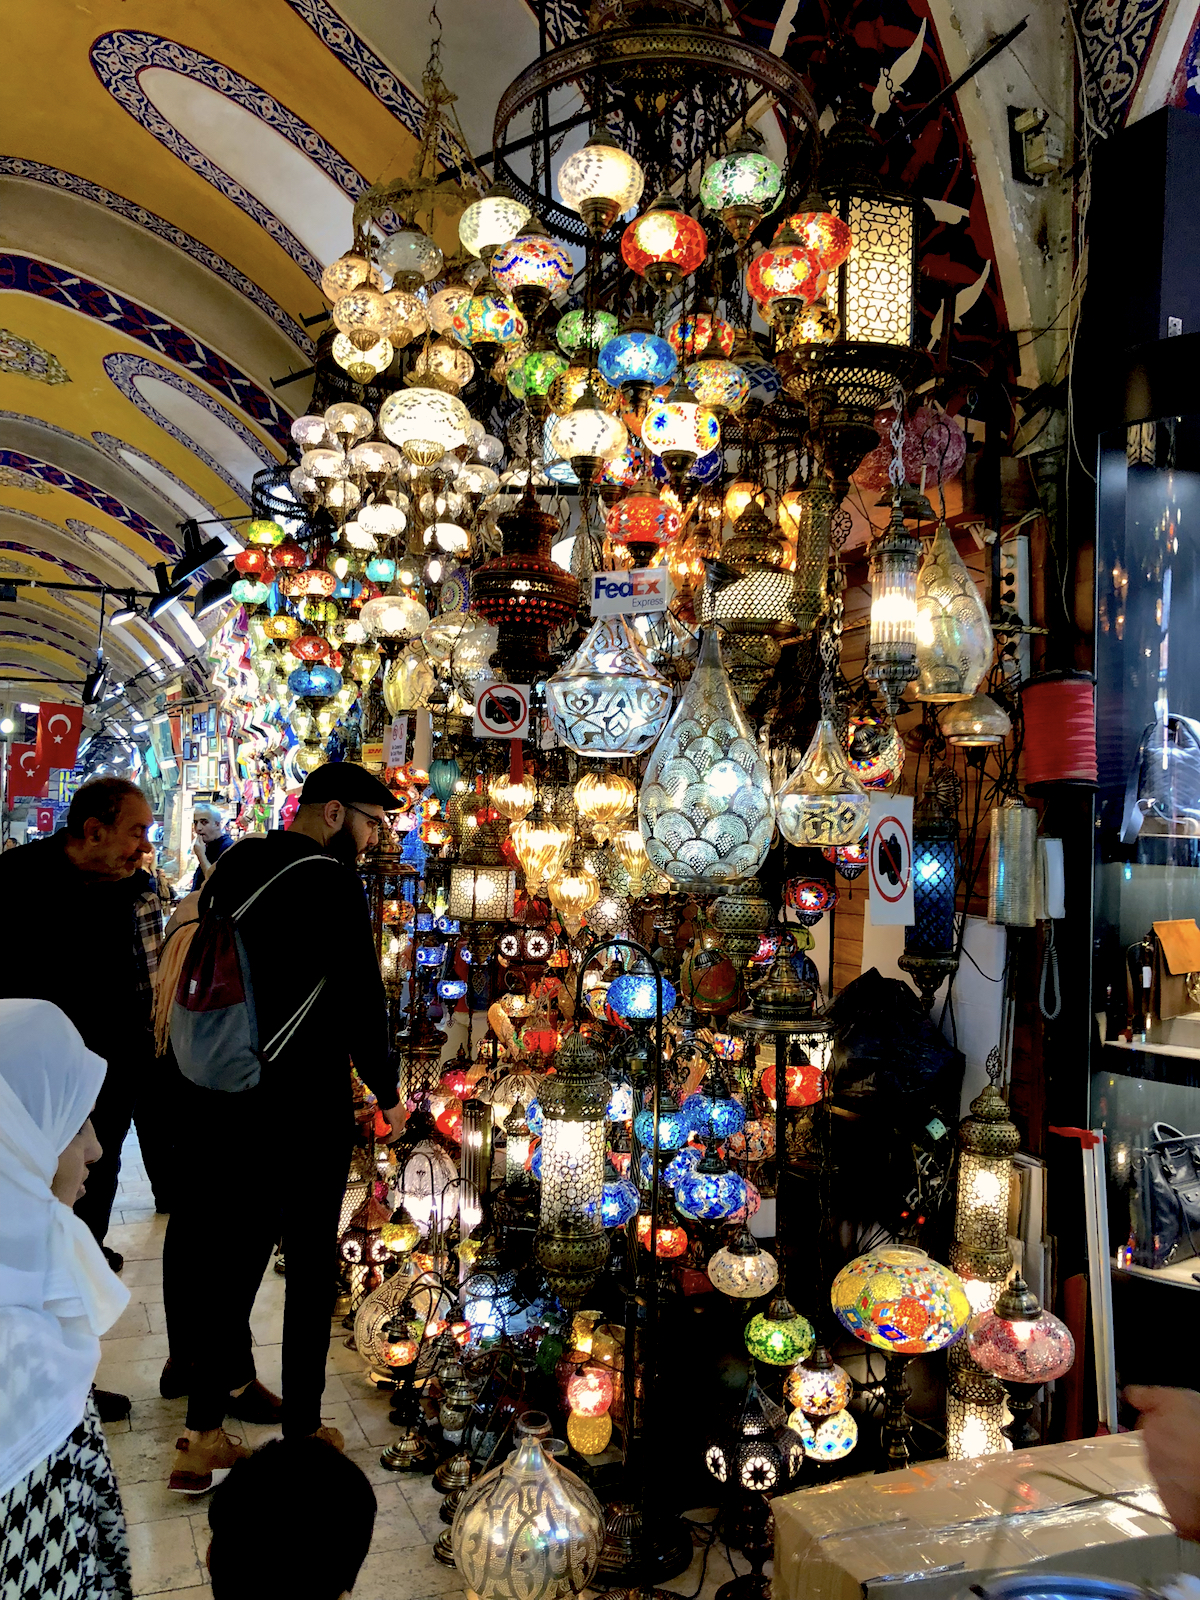 The Grand Bazaar and Spice Market - Top 11 Things to Do In Istanbul